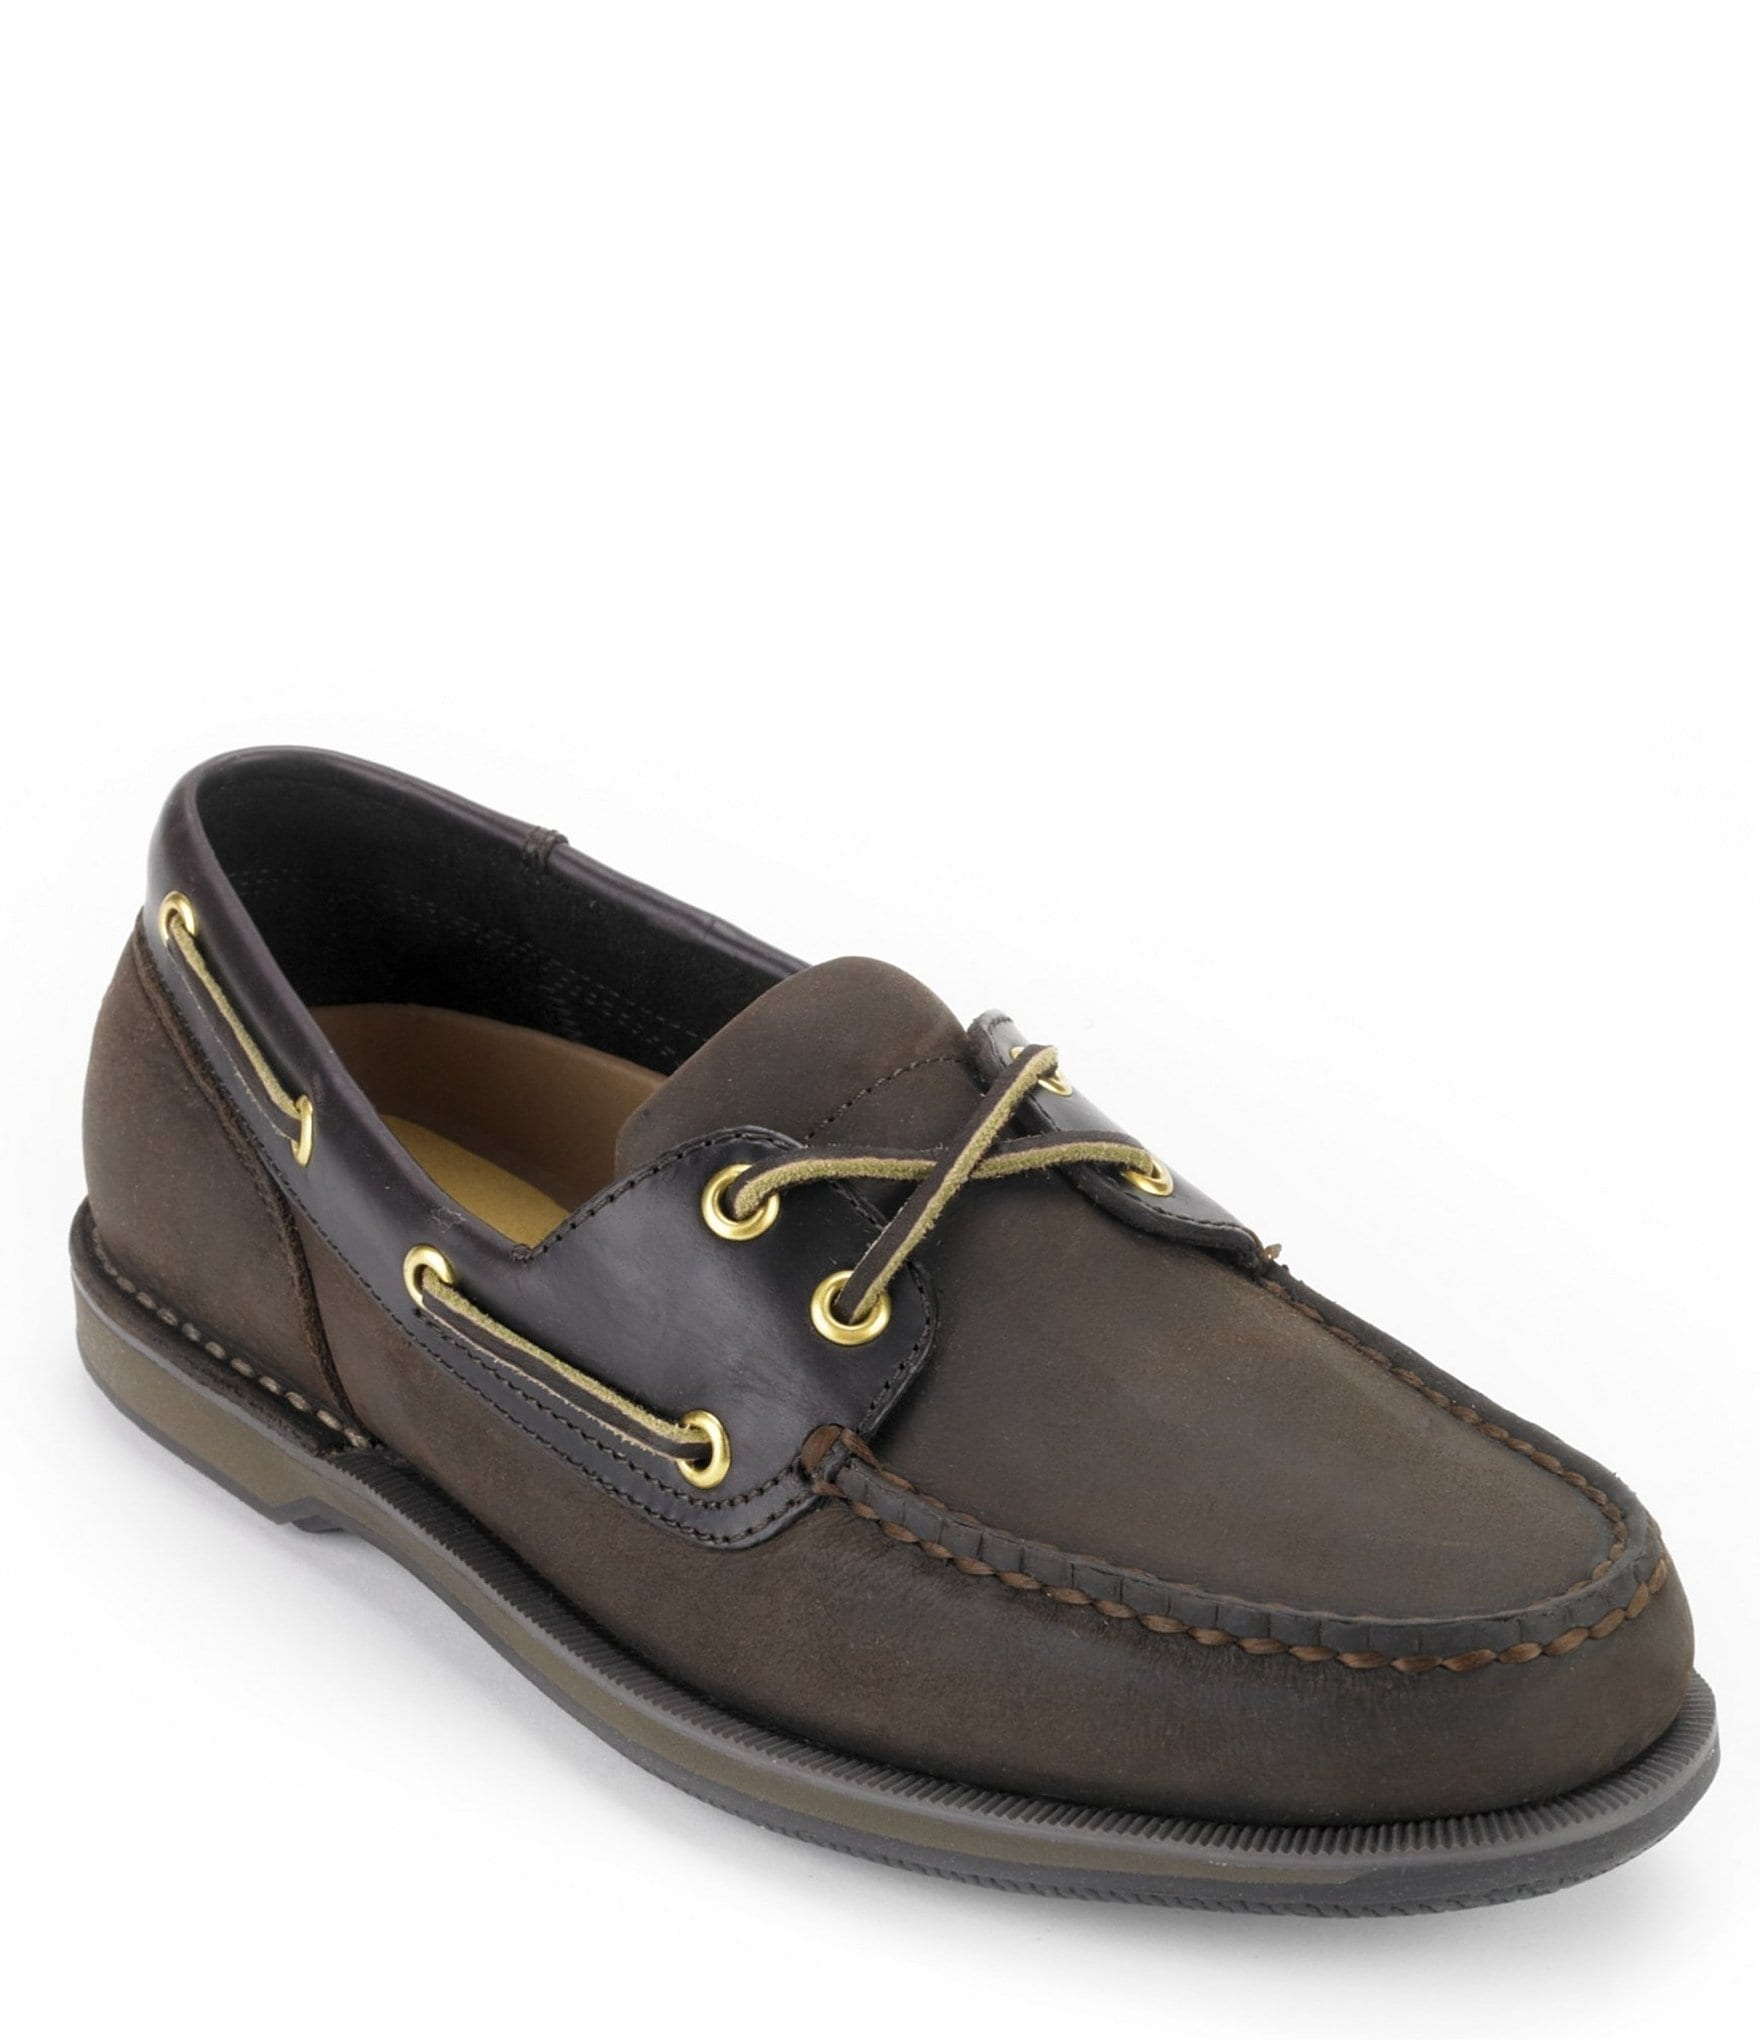 eeb11bee79 Rockport Men s Perth Casual Boat Shoes